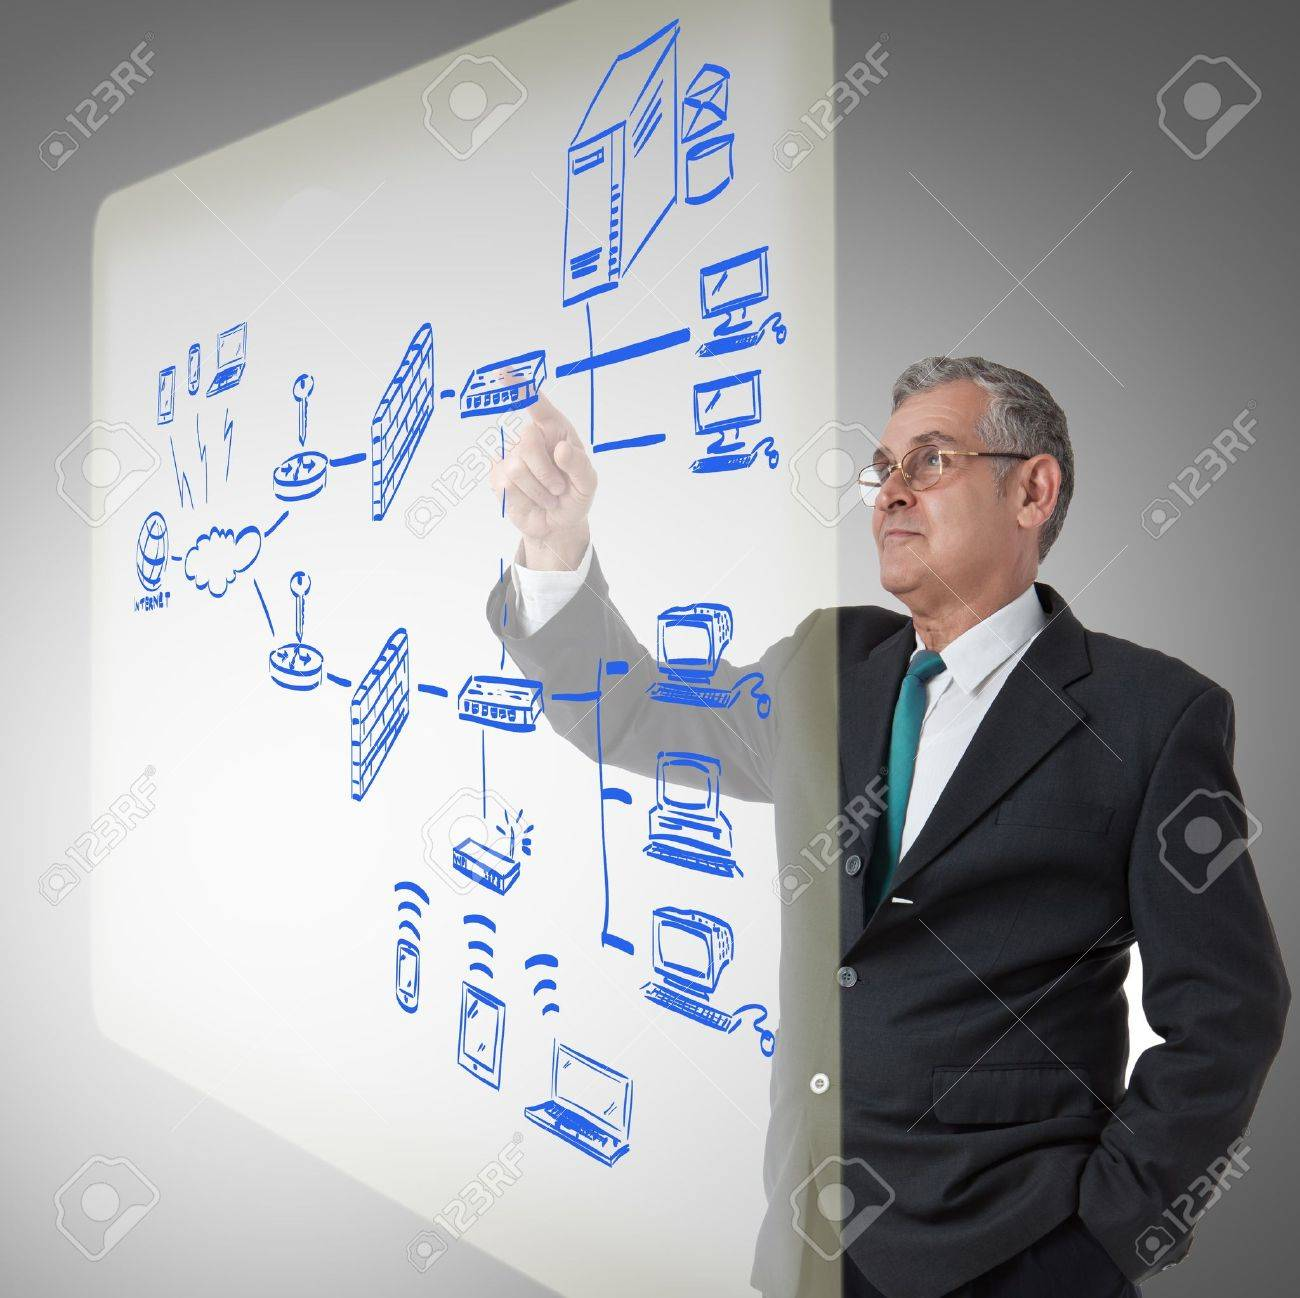 businessman touching a security plan for a firewall system Stock Photo - 12409714